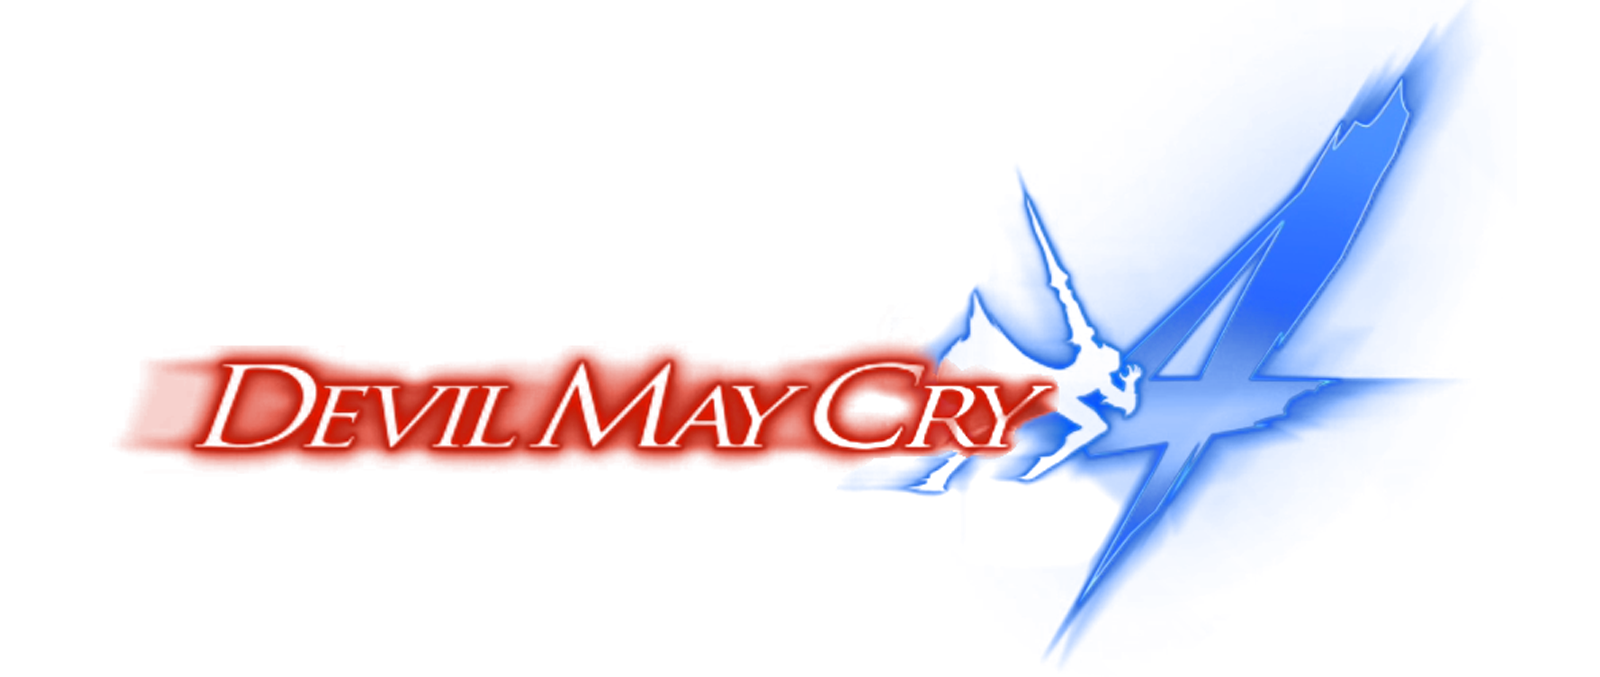 Scarecrow - Devil May Cry 4 - por Ganados/Aldeanos Devil_may_cry_4_logo_transparent_by_jin_05-d52gu3s